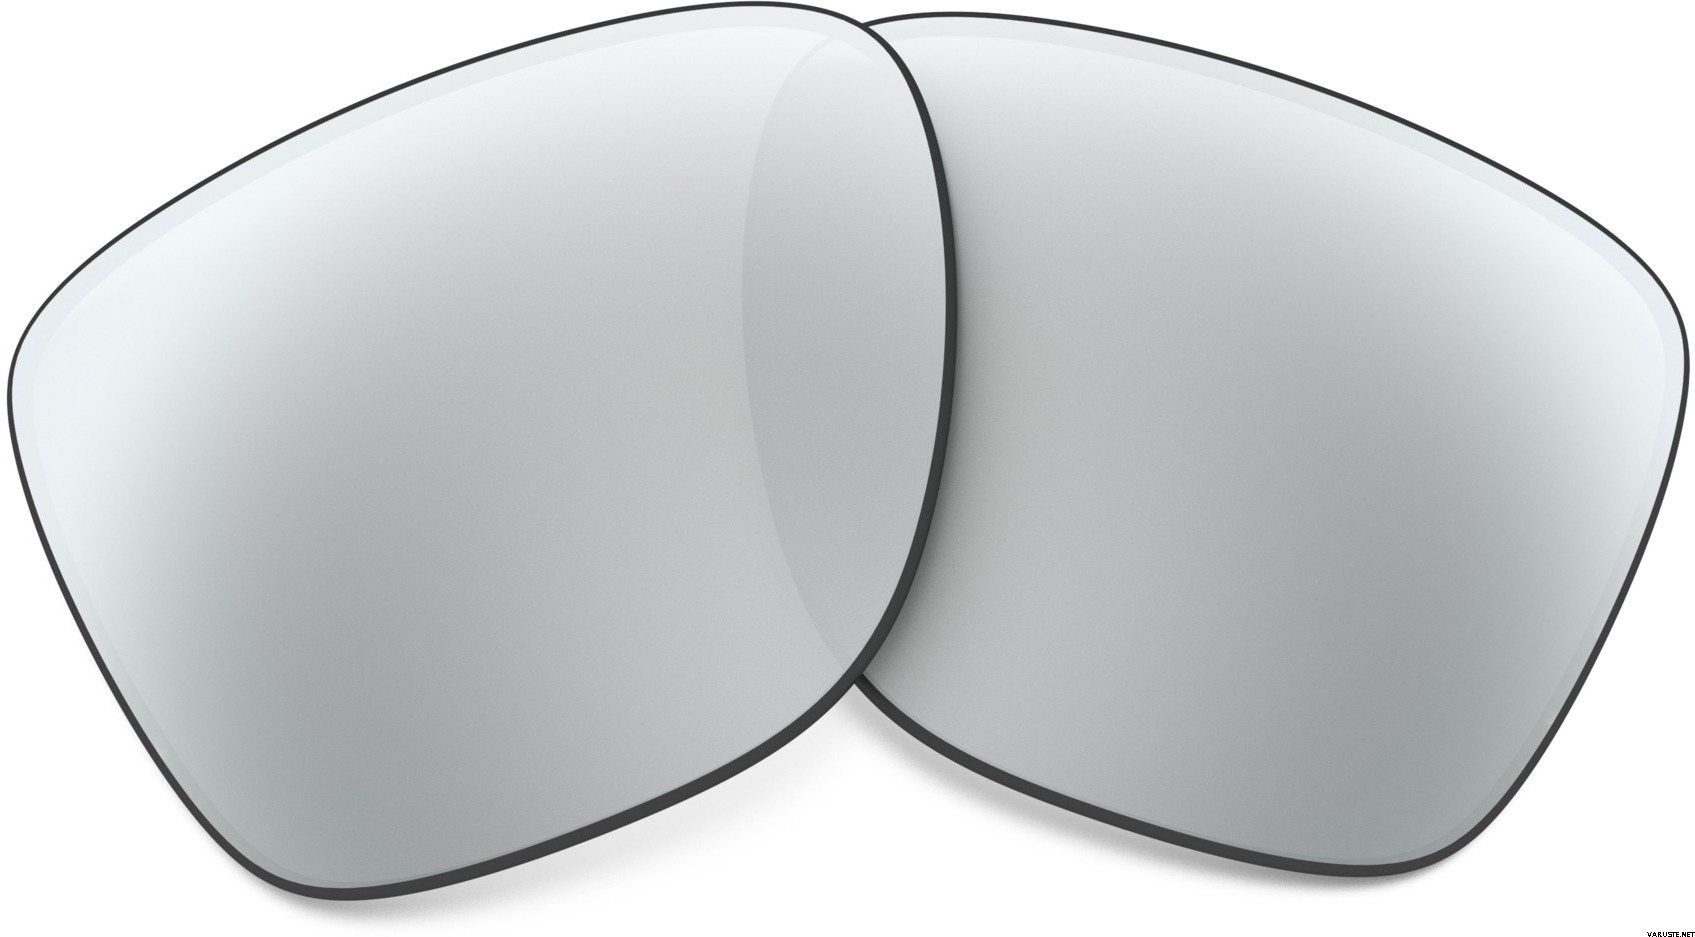 b2f2a9ee22 Oakley Crossrange XL Replacement Lens Kit